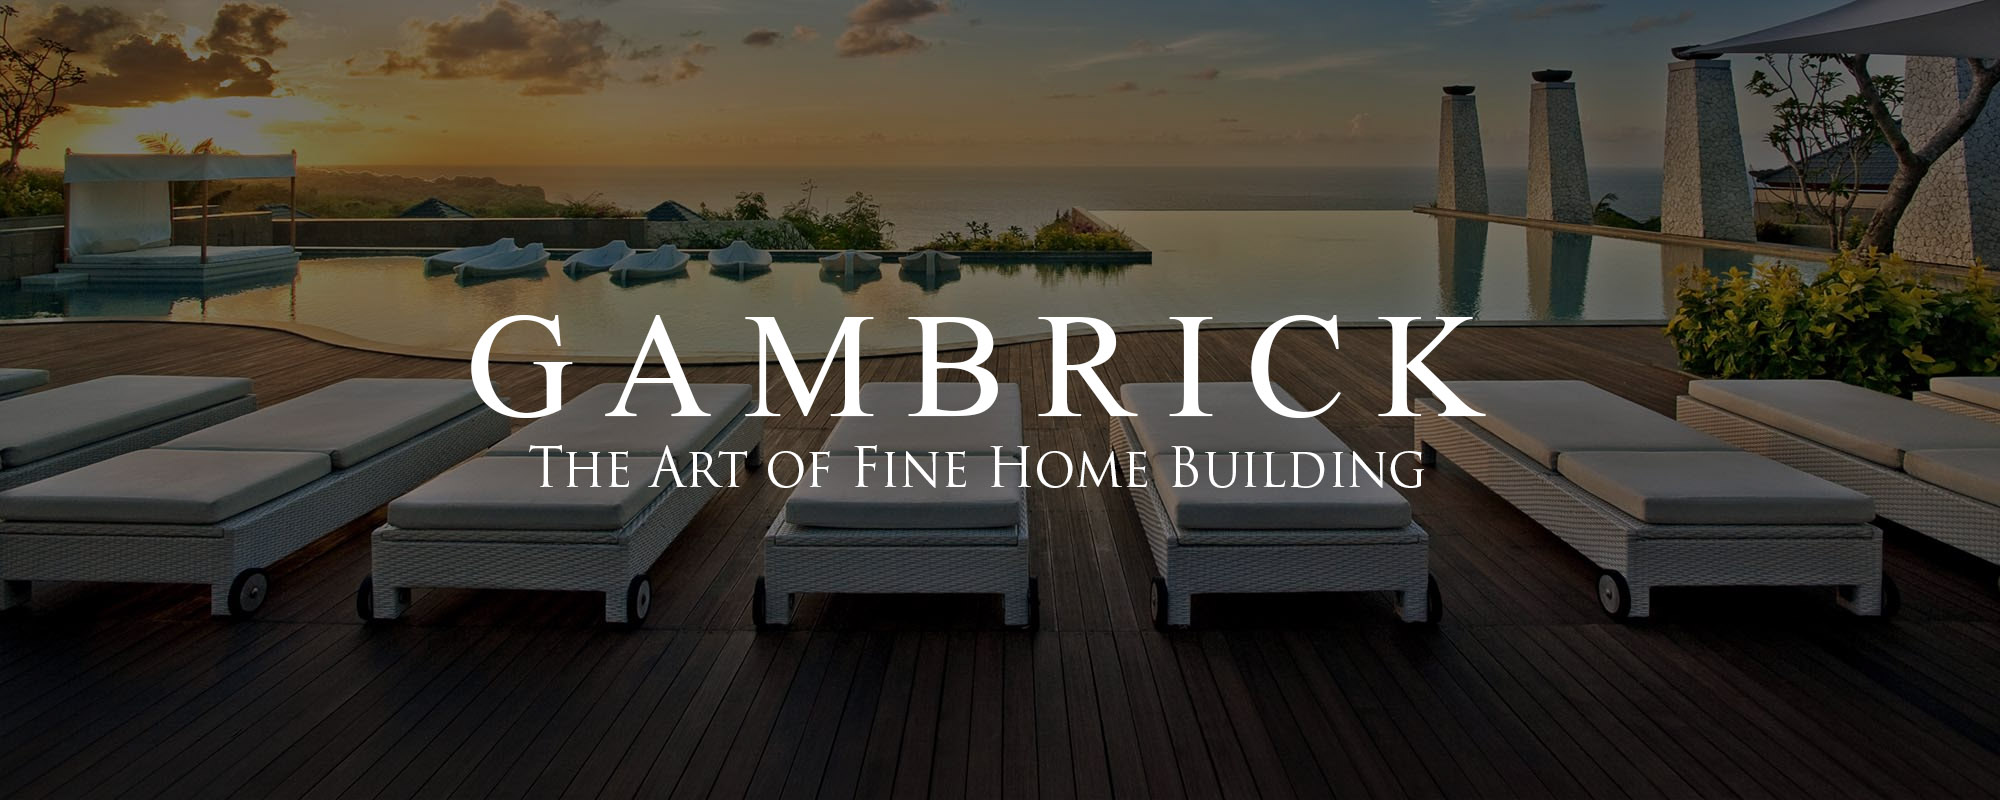 NJ Deck Builder, deck builders in NJ, Ipe waterfront deck with beach chairs - Gambrick